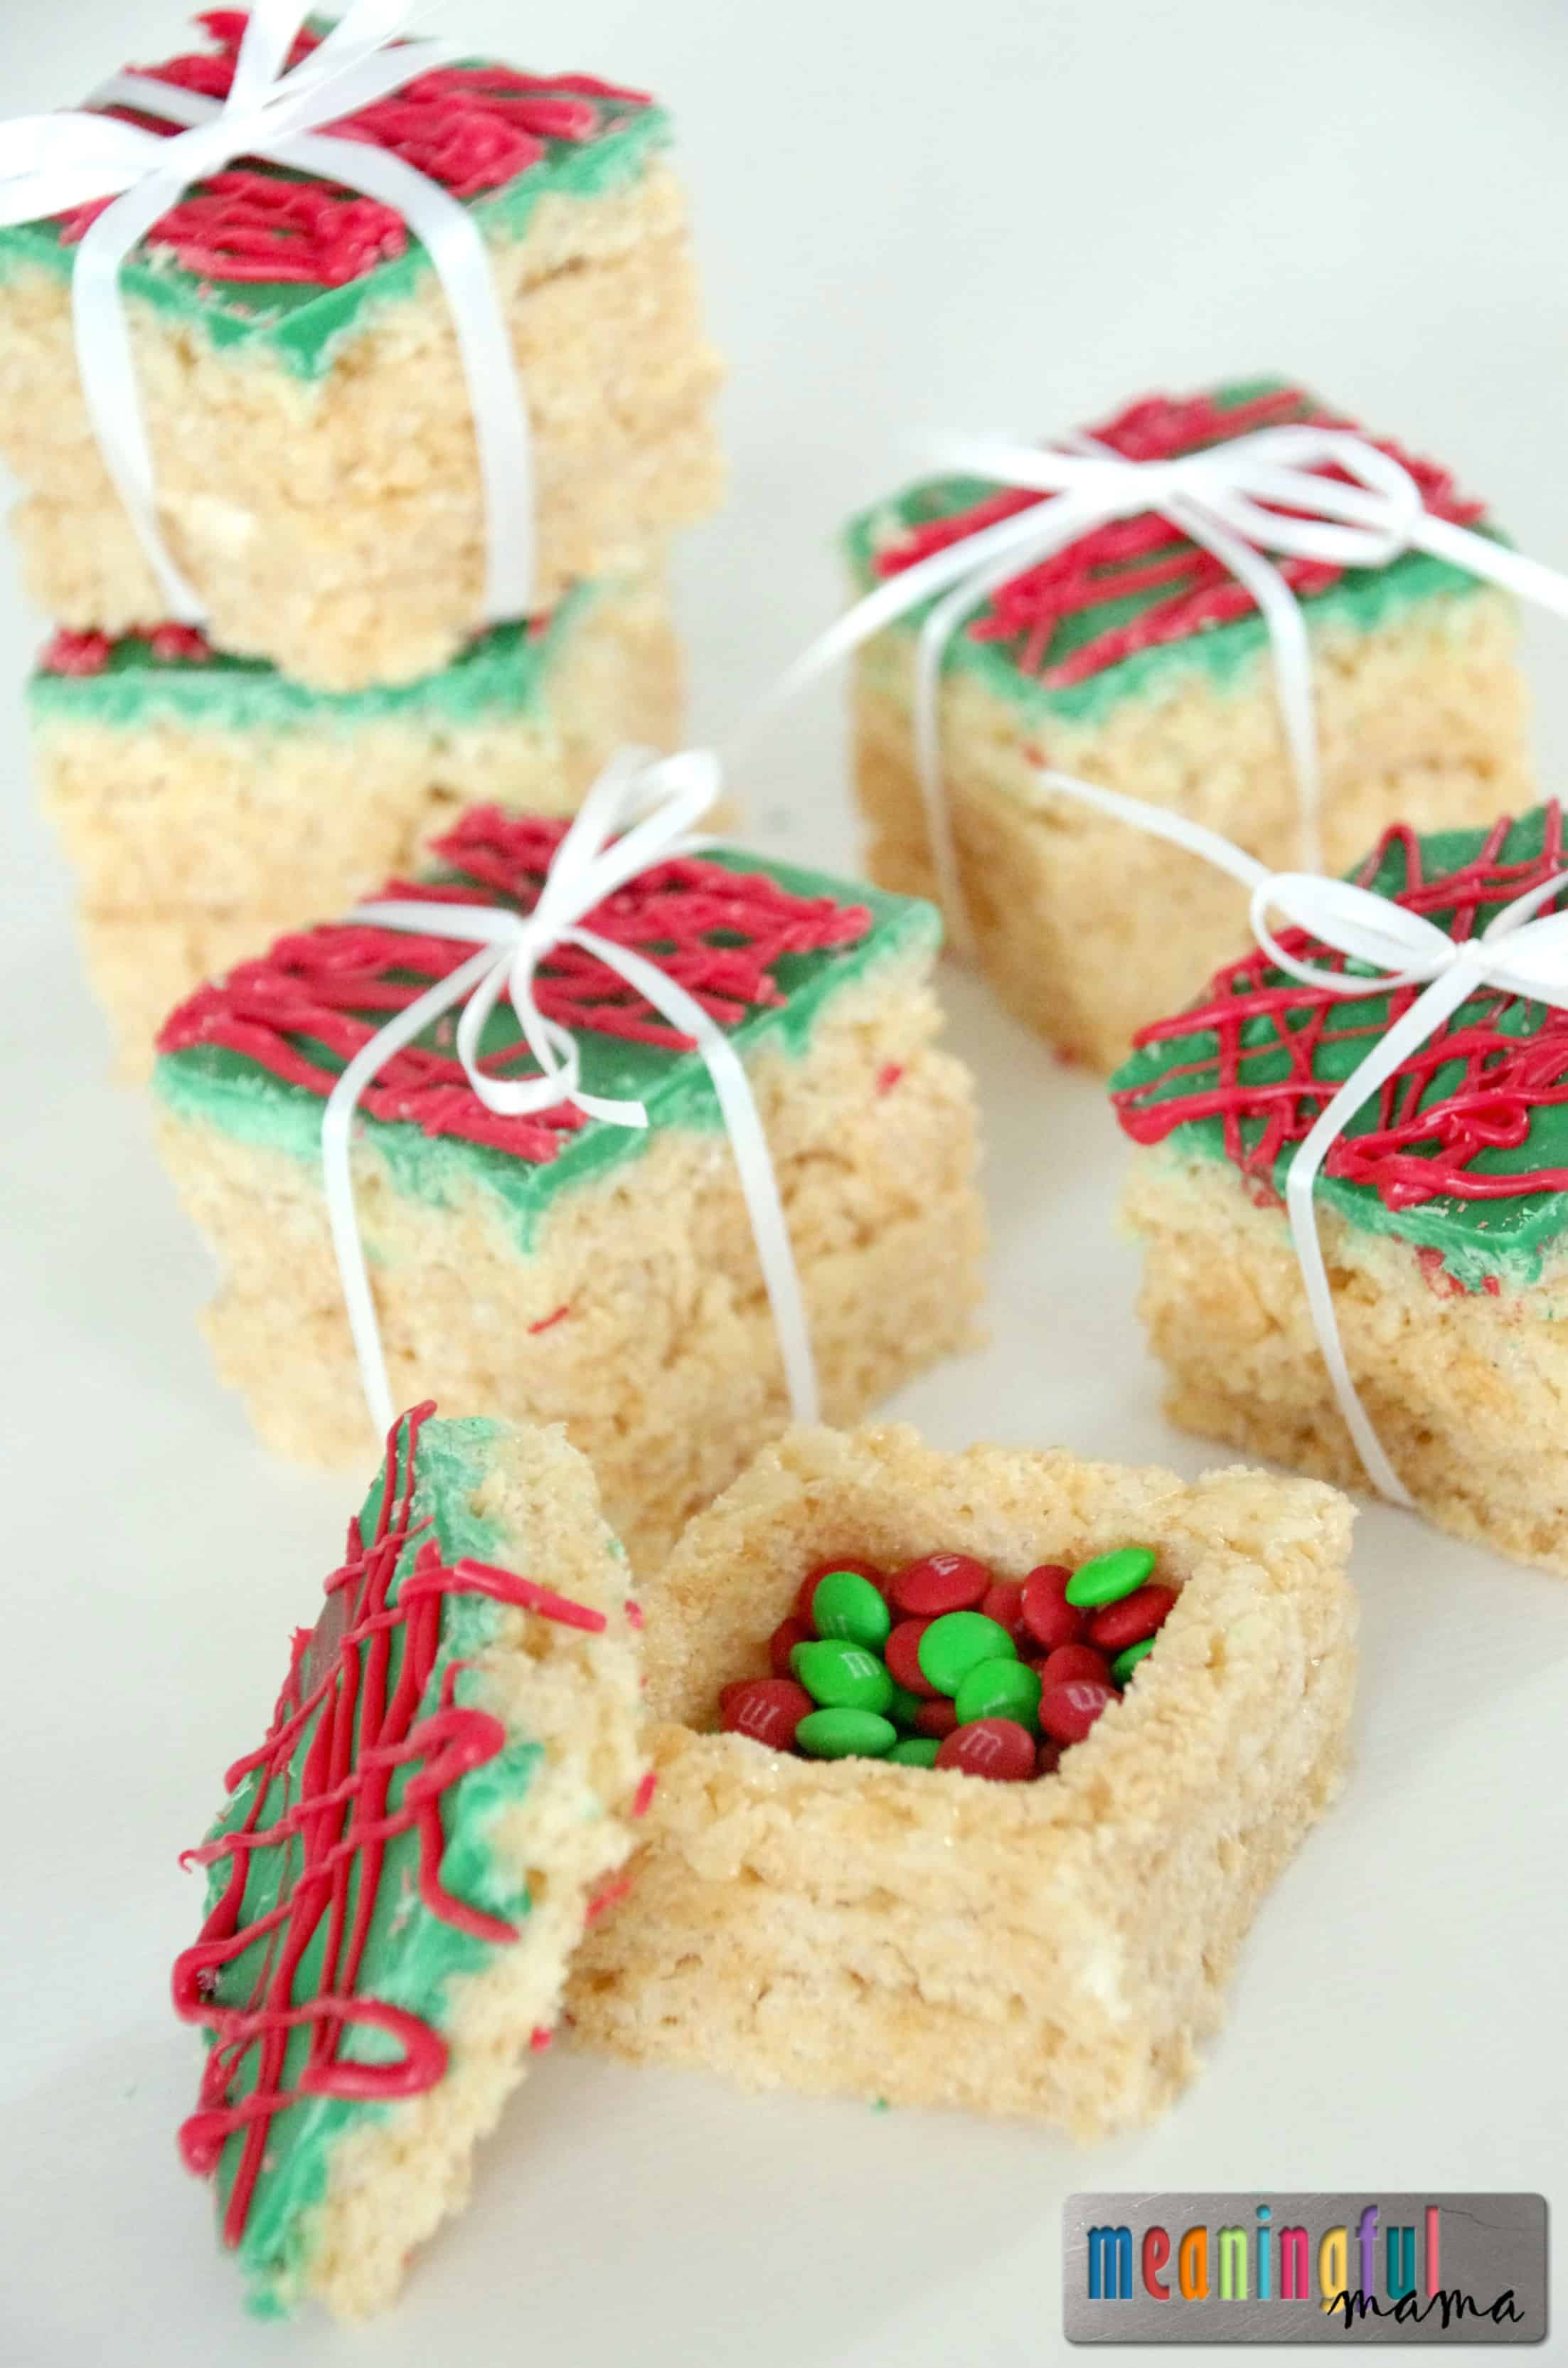 Rice Krispies Treats Presents with a Surprise